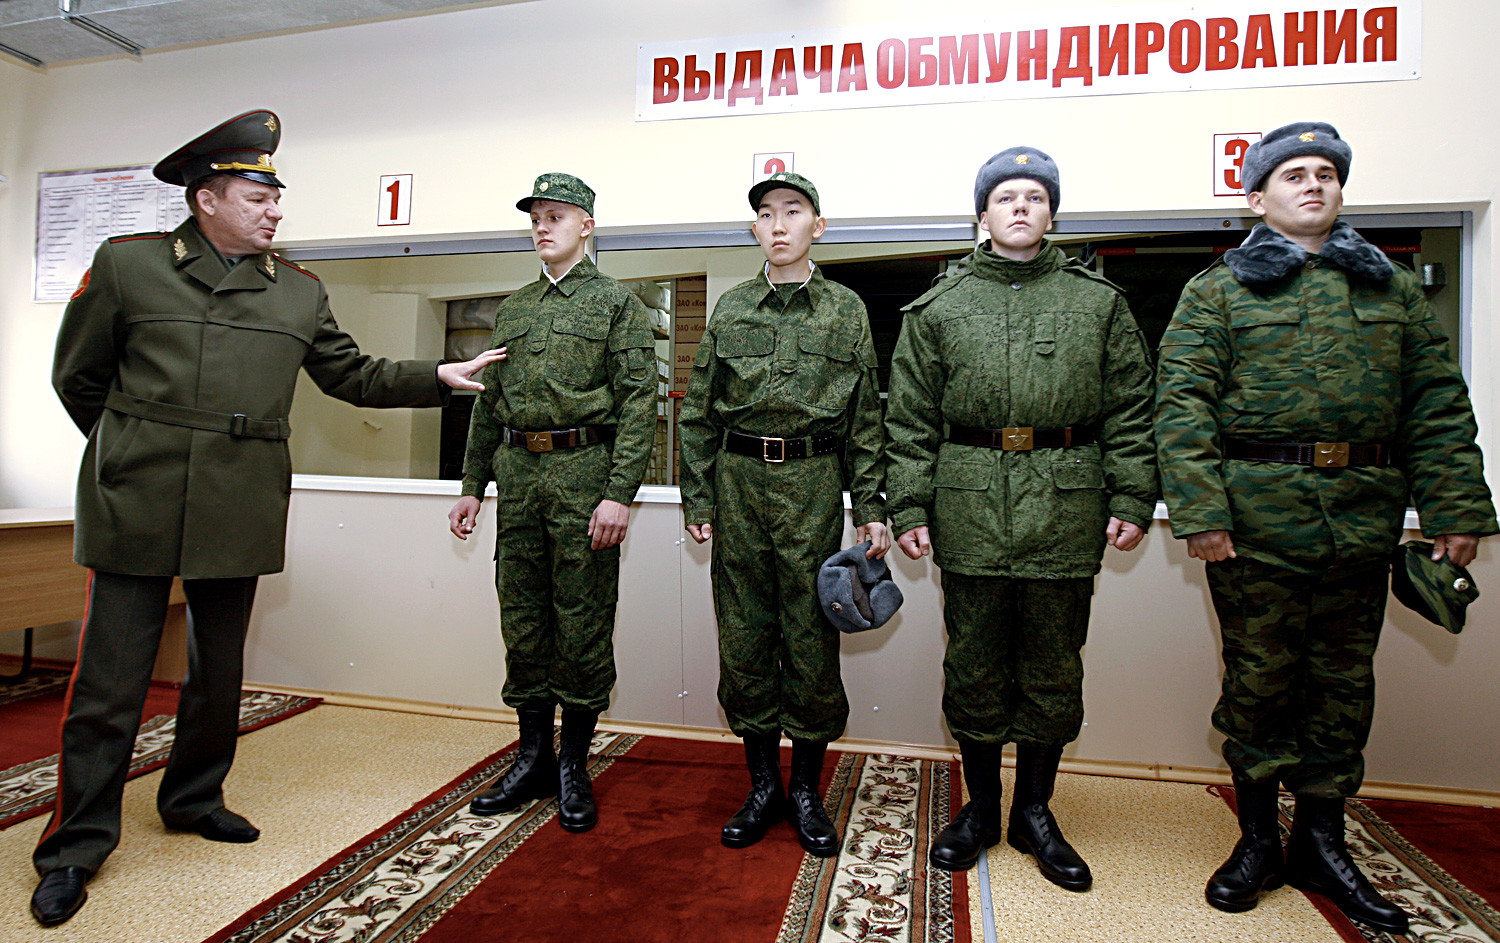 Recruits seen at the outfit room before leaving for the army service from a Kazan conscription office.